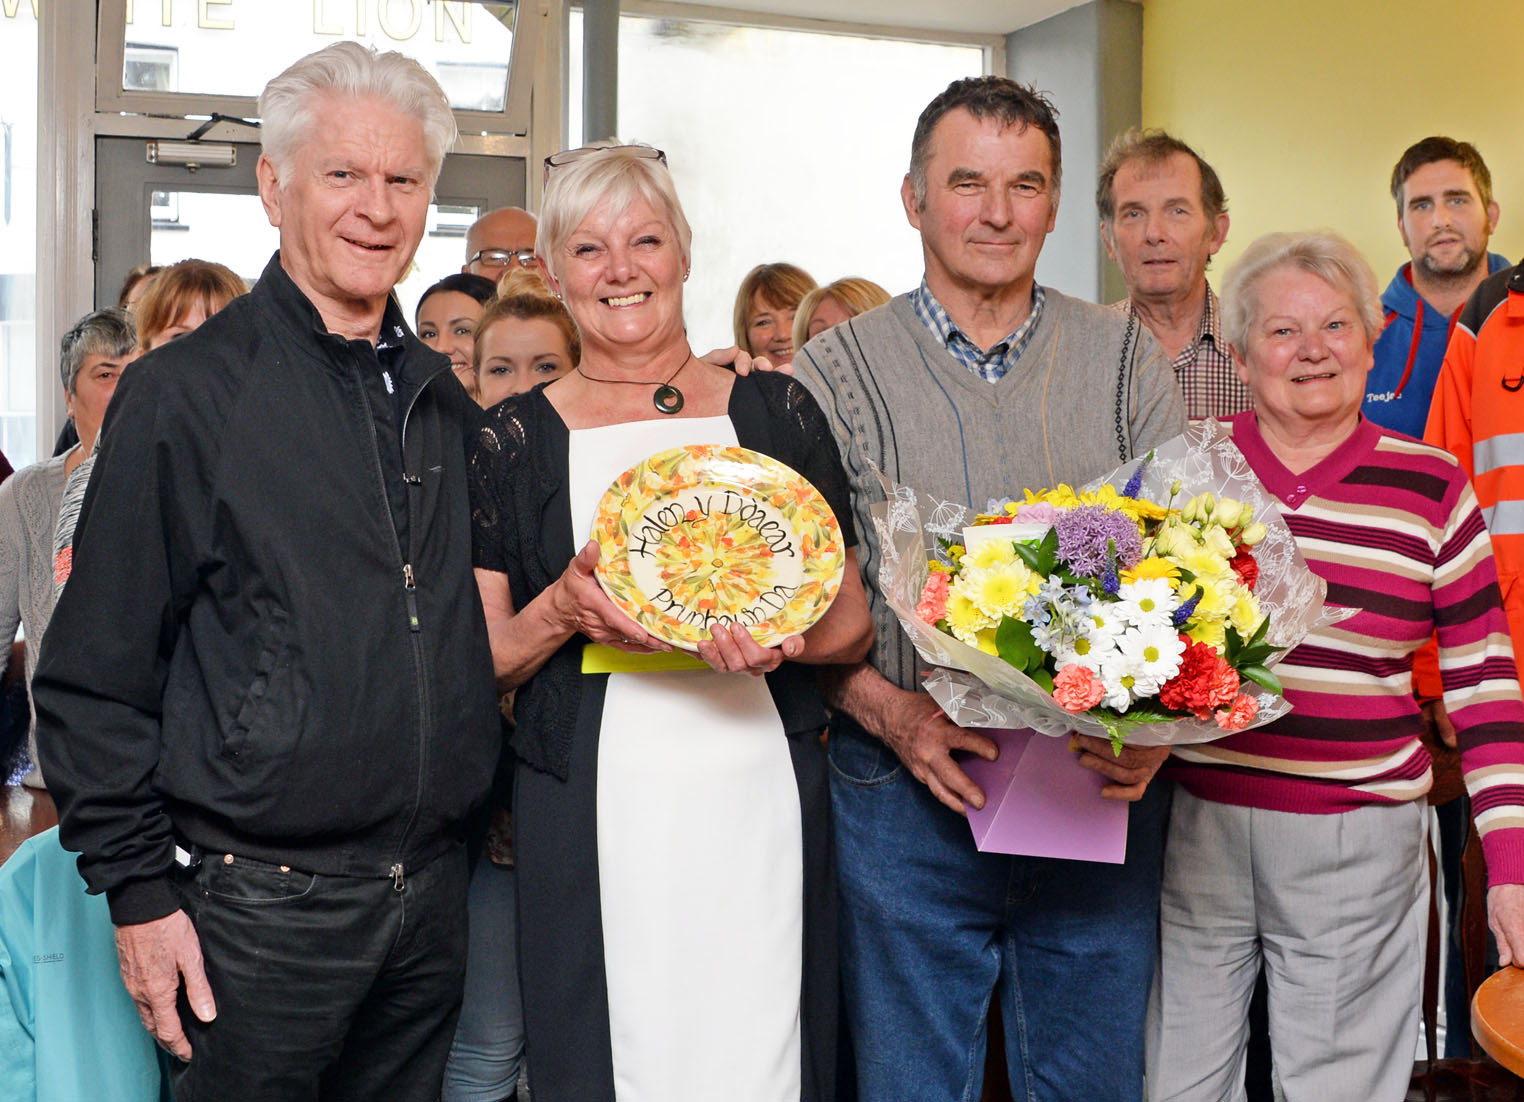 Janice Roberts receiving her award (centre-left) with Alwyn Humphreys, host of S4C show 'Wedi Saith' (centre-right) and members of the community